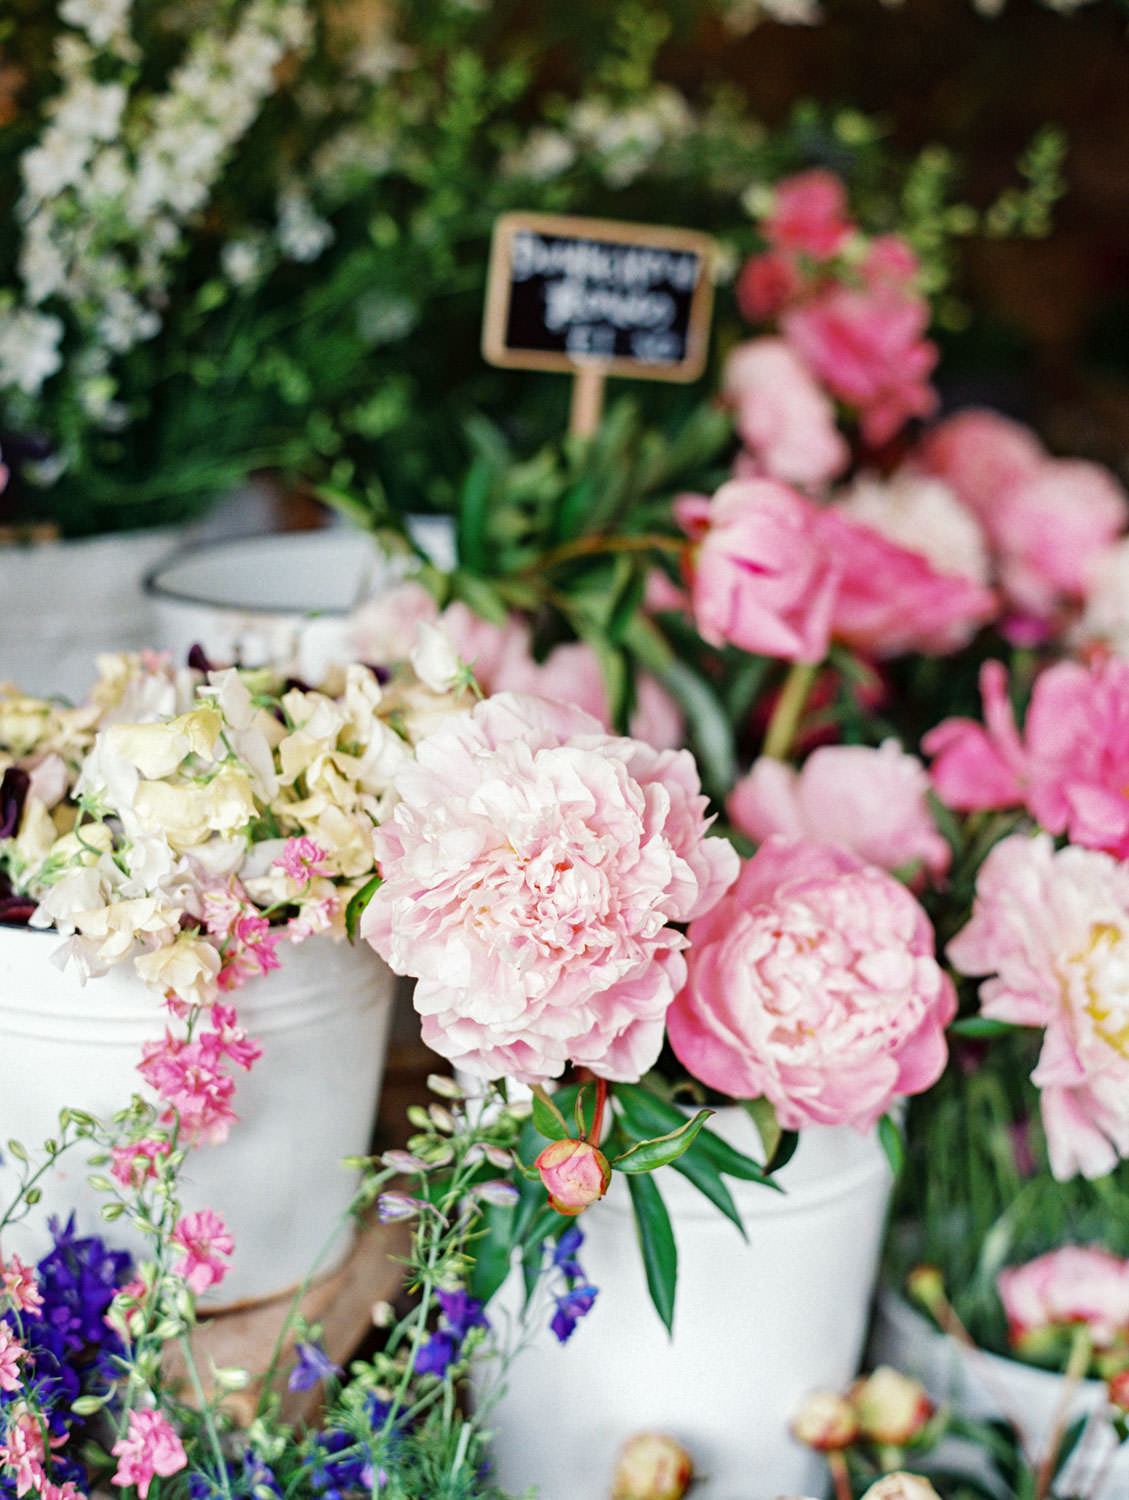 Daylesford Farm flower shop display. Photo by Cavin Elizabeth Photography on film